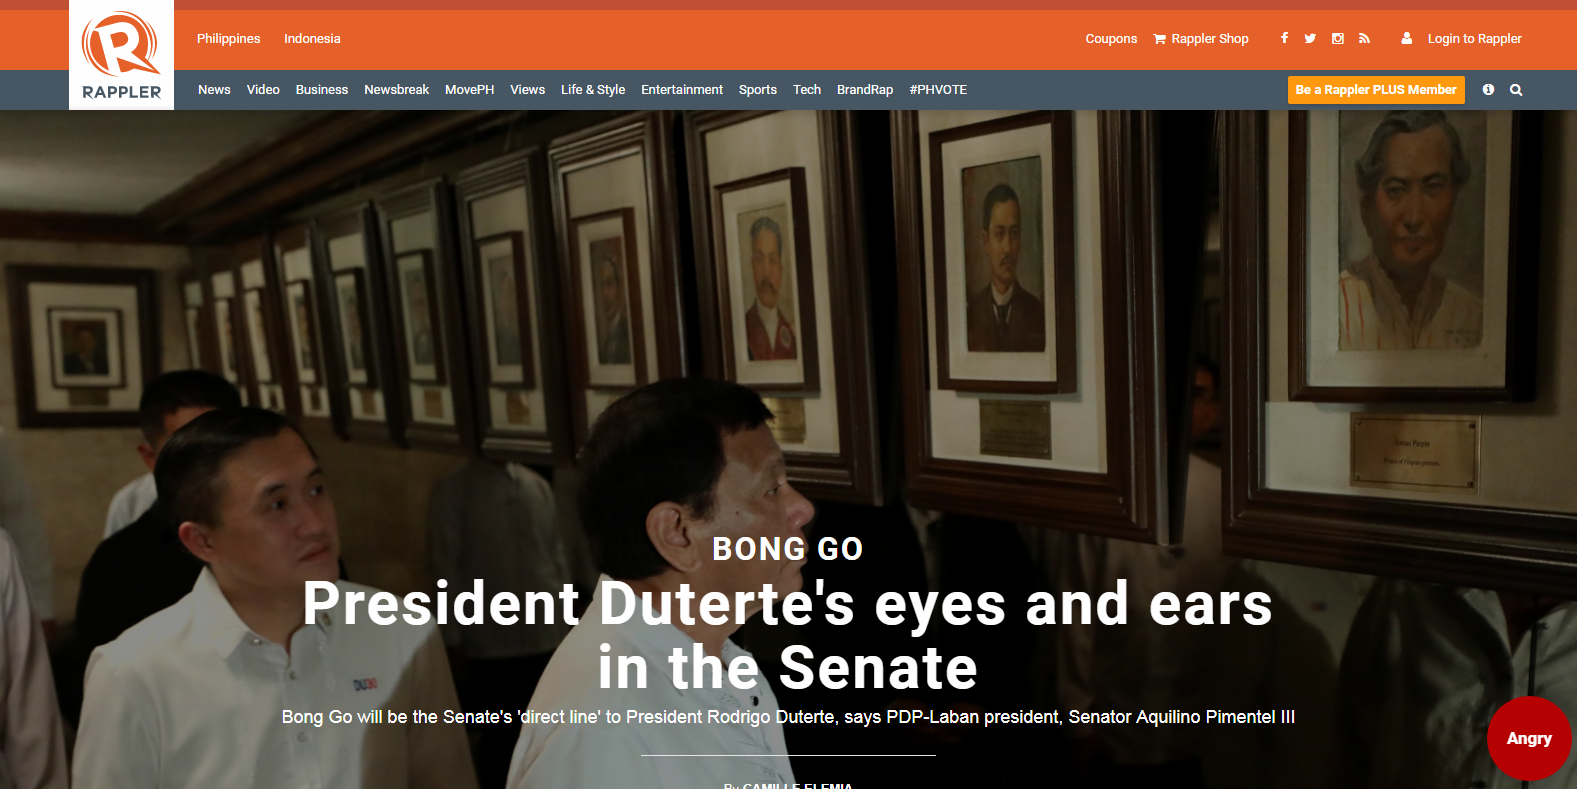 Bong Go: President Duterte's eyes and ears in the Senate